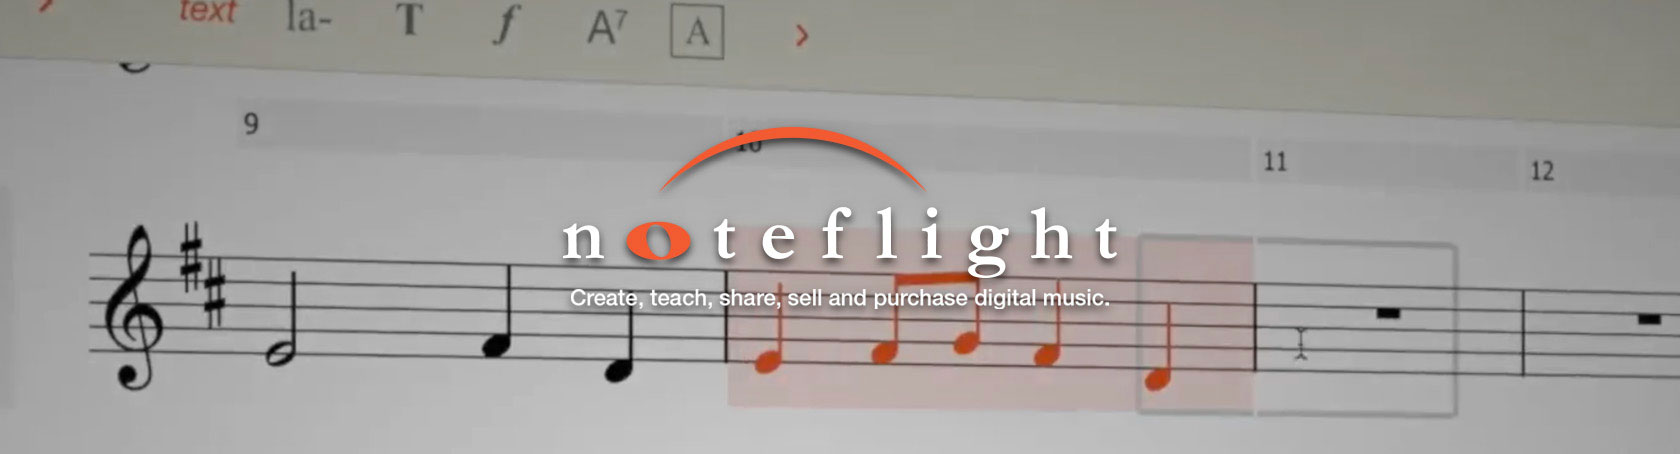 Noteflight Video